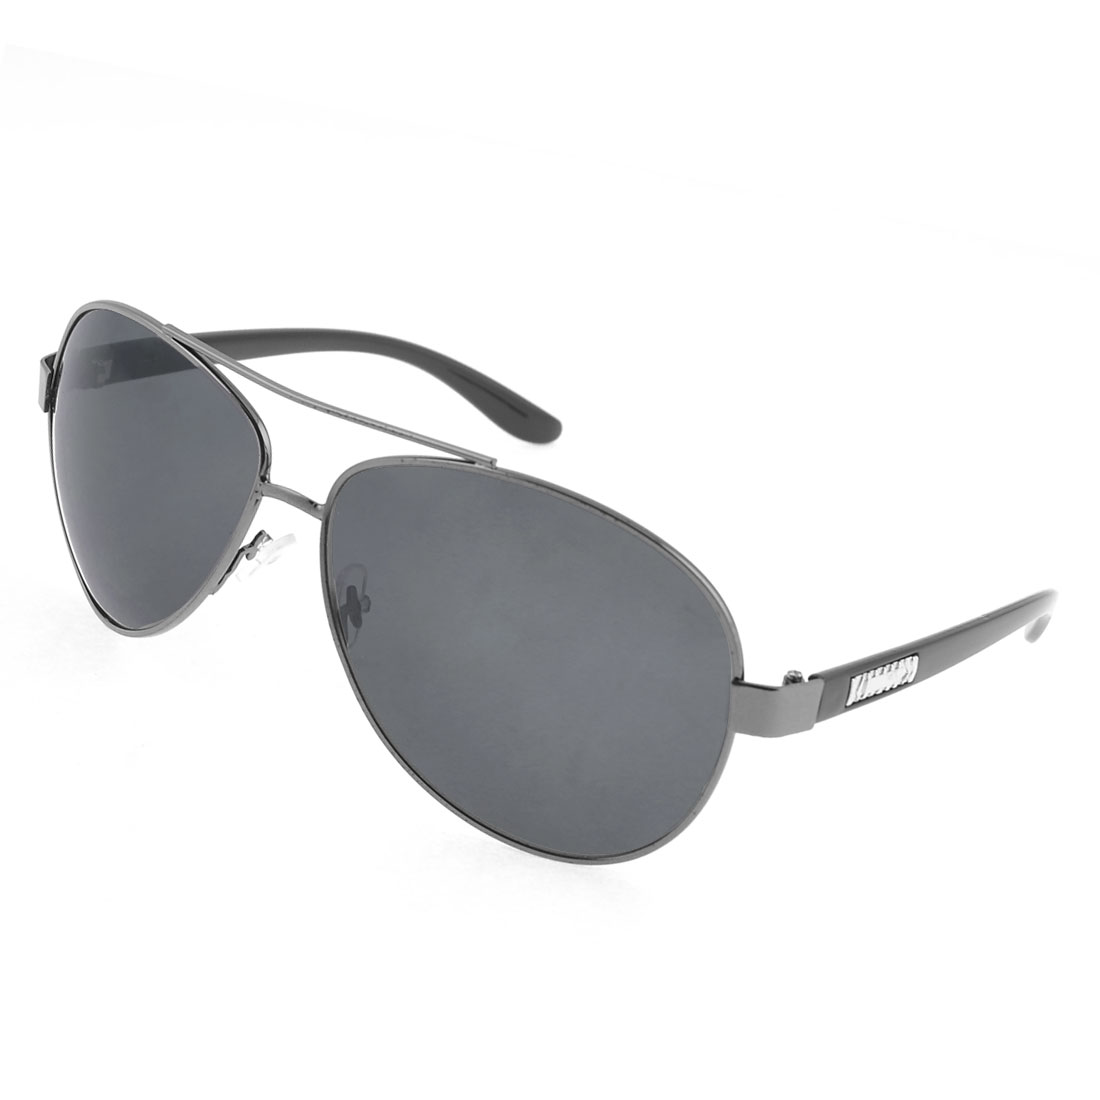 Black Double Bridges Triangle Shape Lens Sunglasses for Men